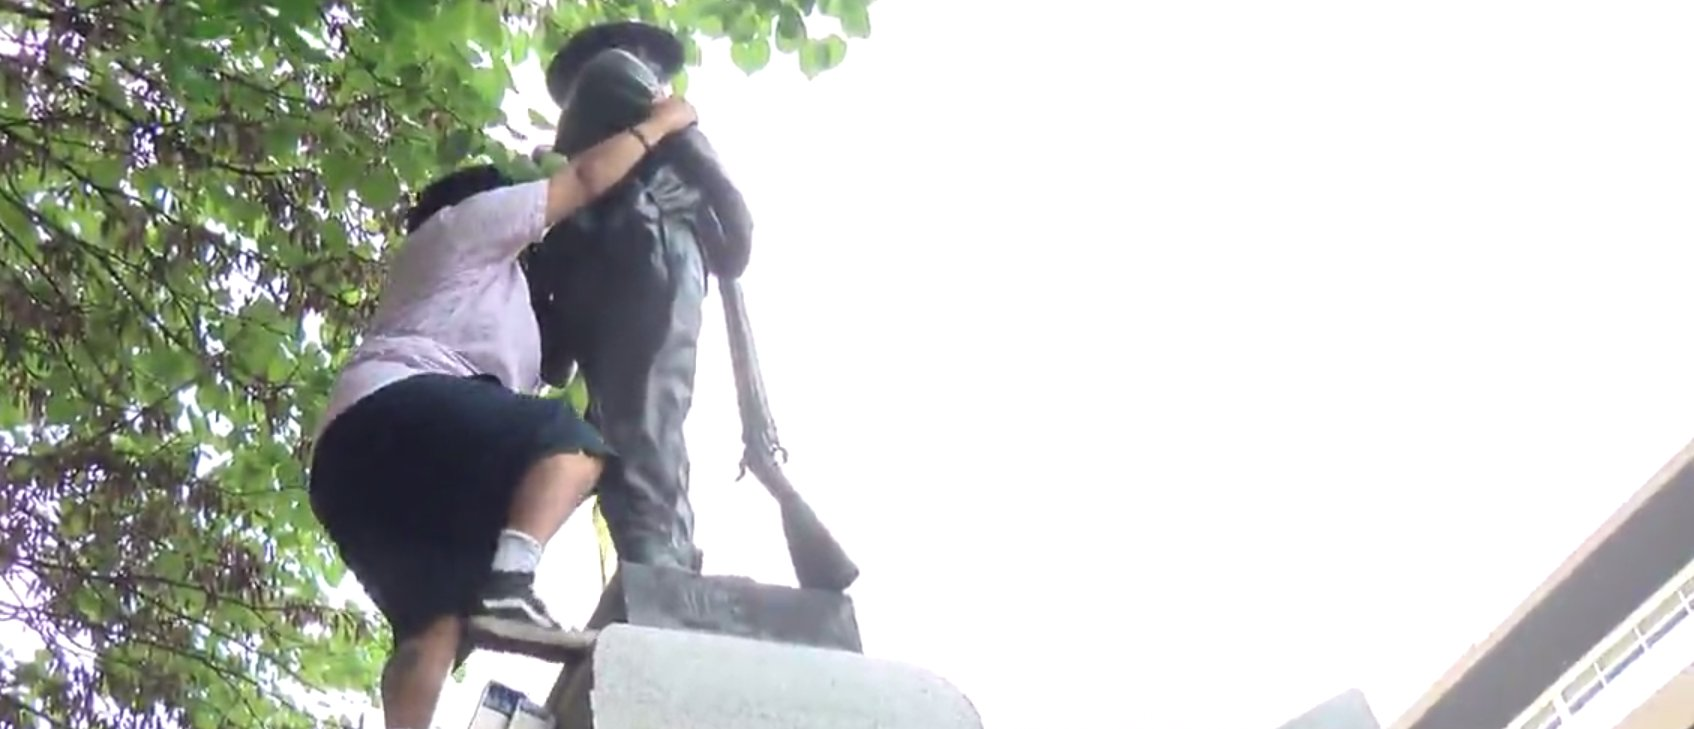 Woman Who Destroyed Durham Confederate Statue Is A Pro-North Korea Marxist https://t.co/MVobUI5e5c https://t.co/kgzZRxNfrg